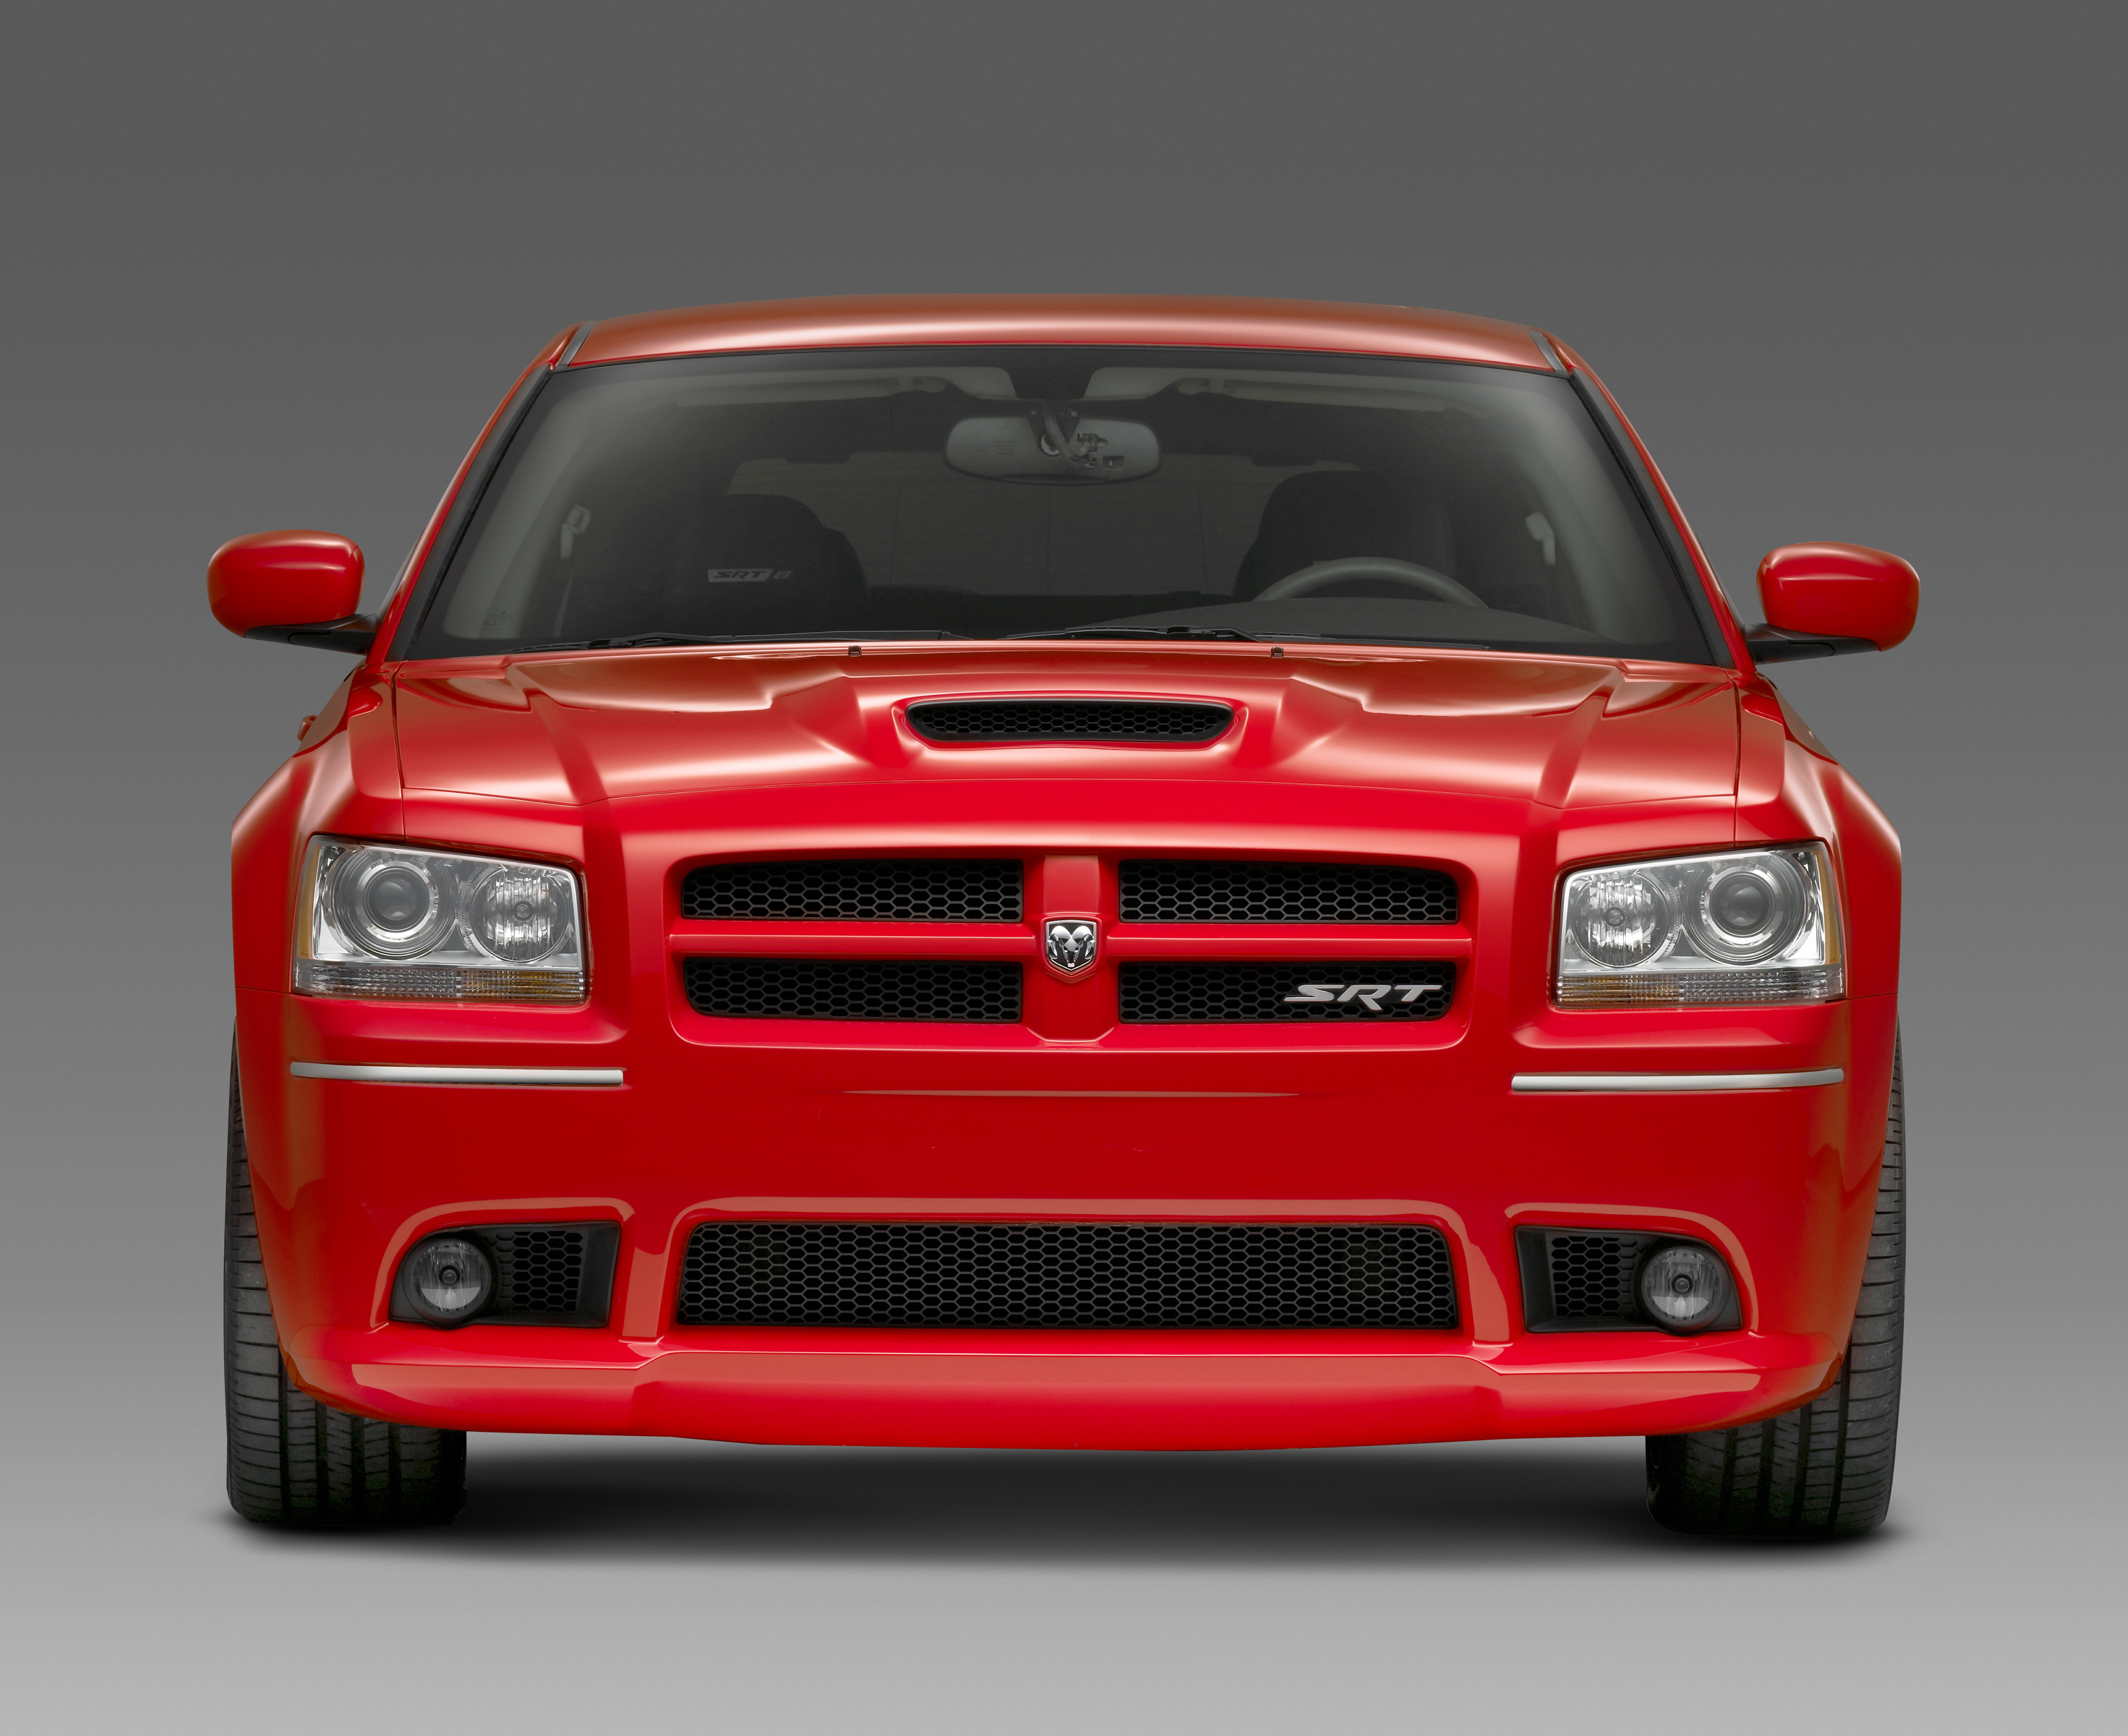 2016 Dodge Magnum >> Srt Chief Hints At Dodge Magnum Wagon Revival Good Idea Motortrend